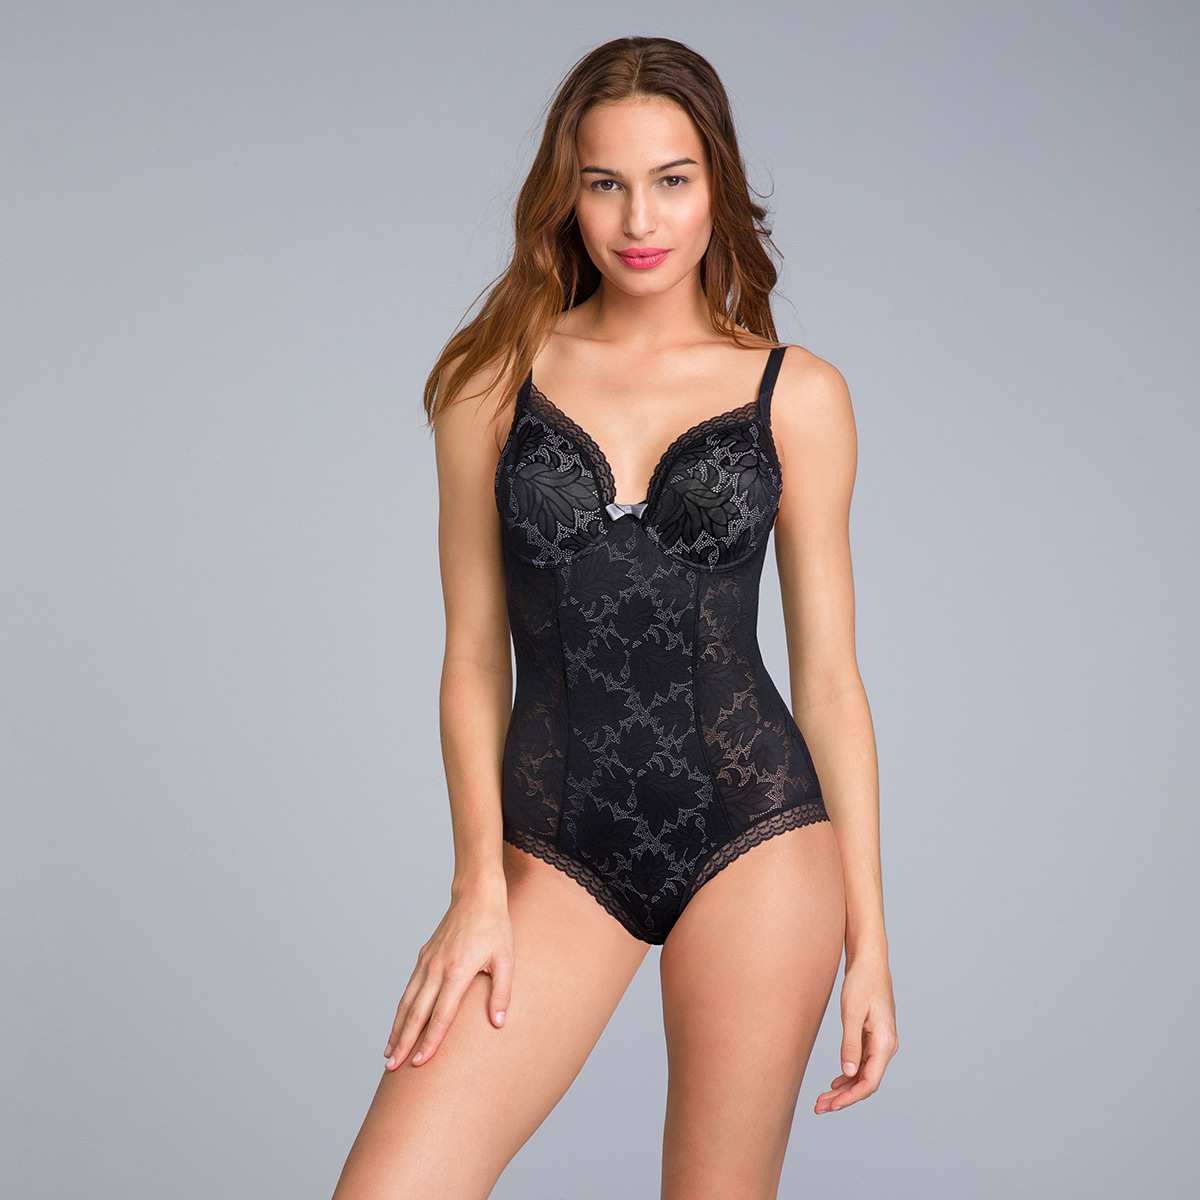 Underwired Bodysuit in Black Lace - Invisible Elegance - PLAYTEX